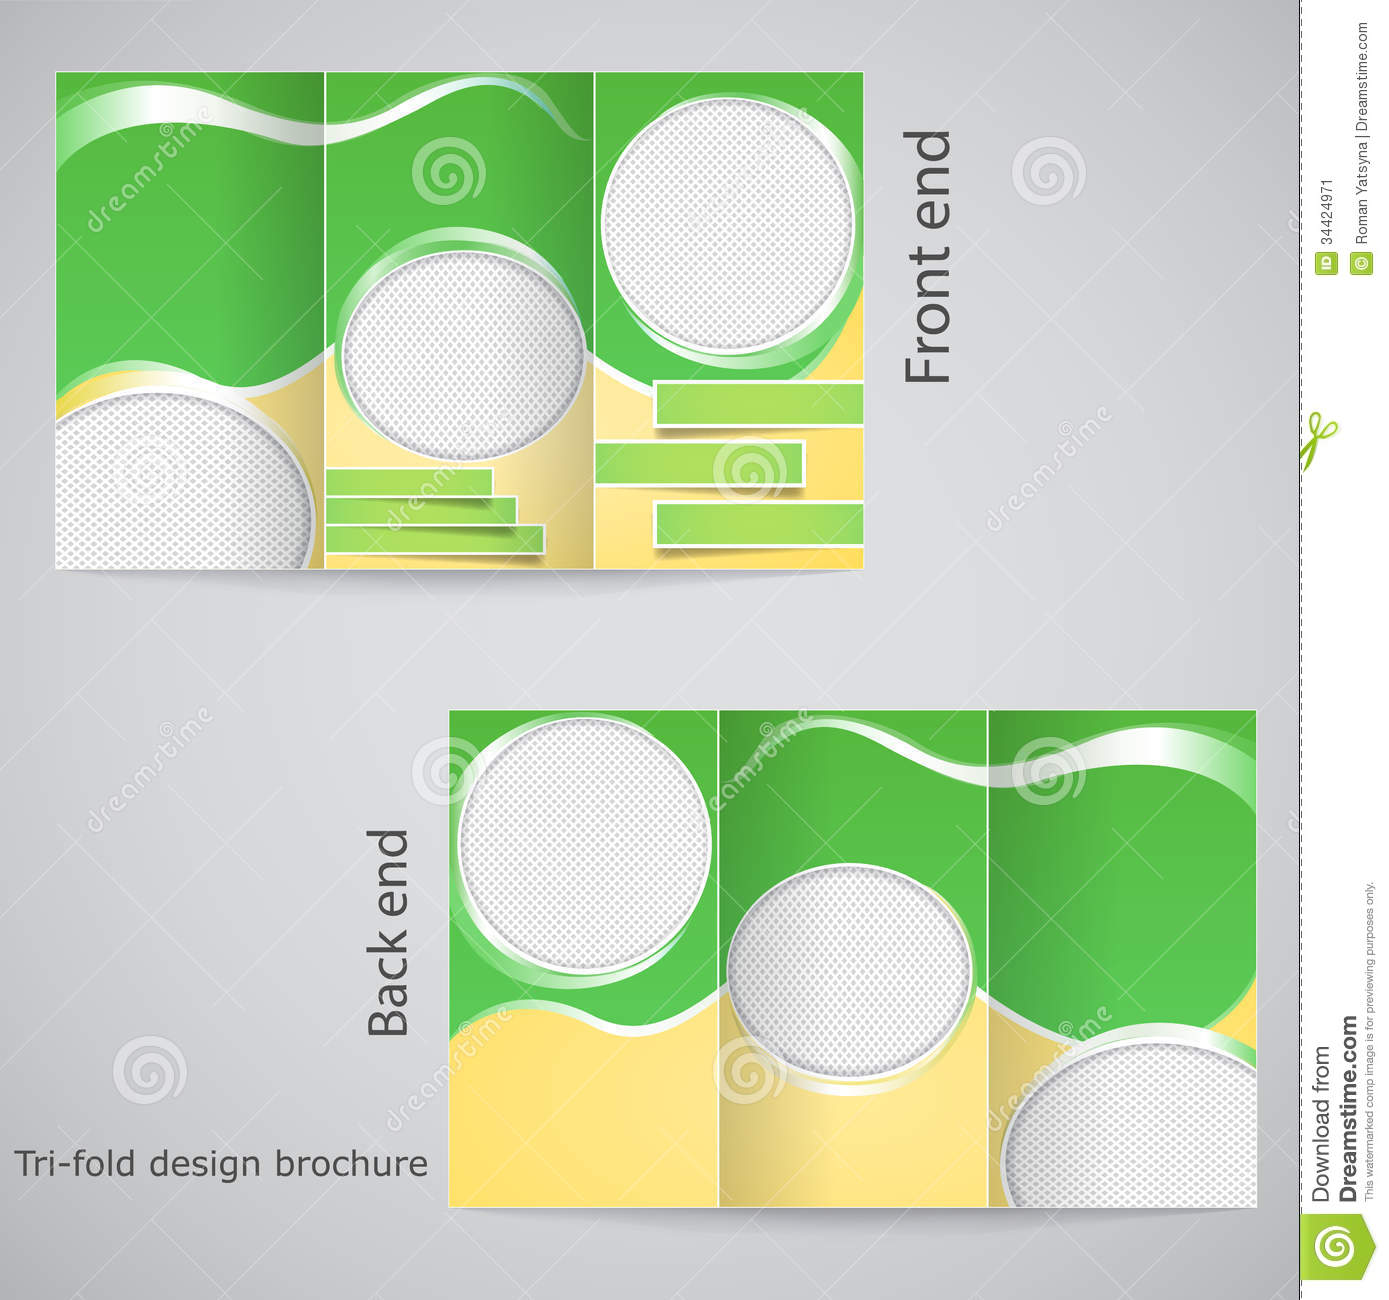 Tri fold brochure design stock vector illustration of for Tri fold brochure templates free download